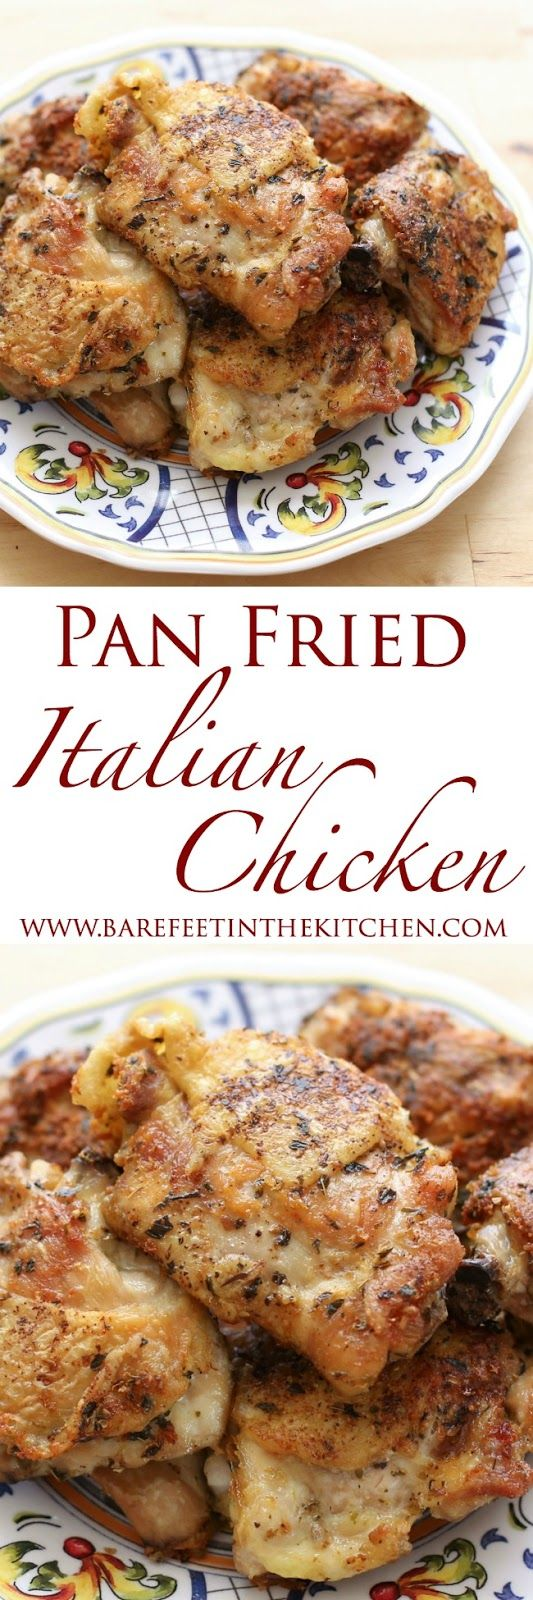 EASY Pan-Fried Italian Chicken is made with just 1 tablespoon of oil!